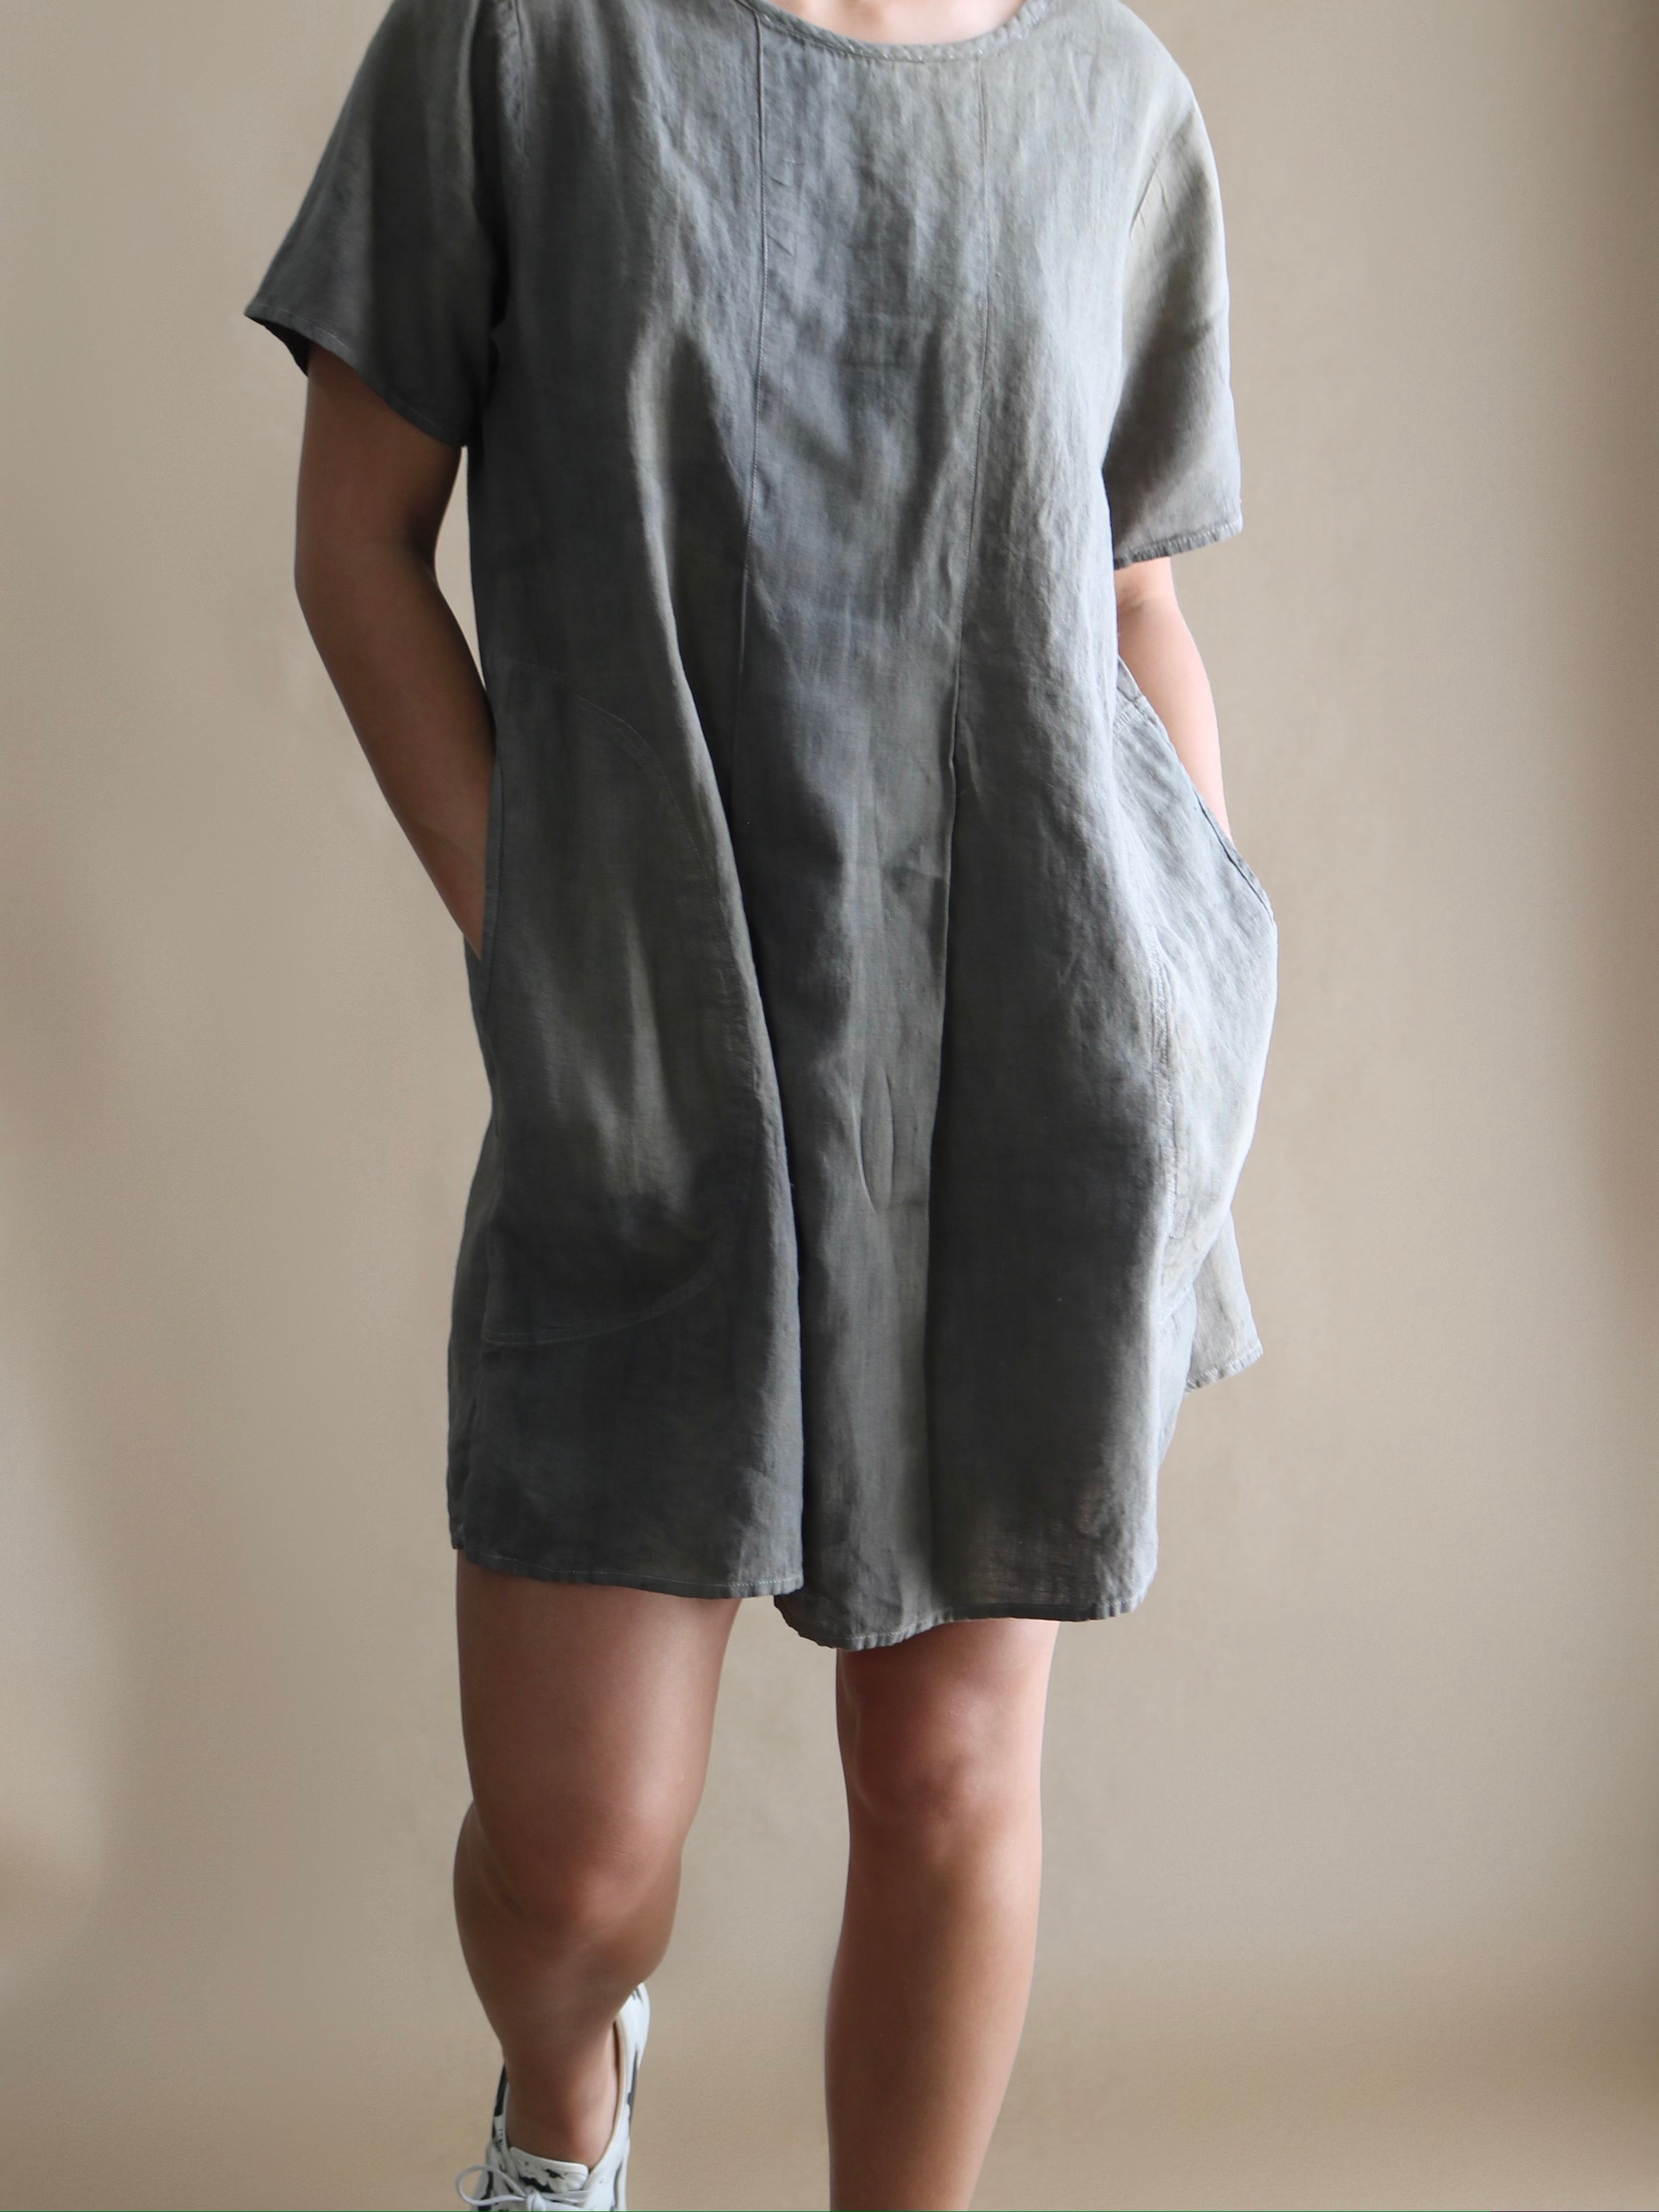 linen dress, lil bits cloth x vinti